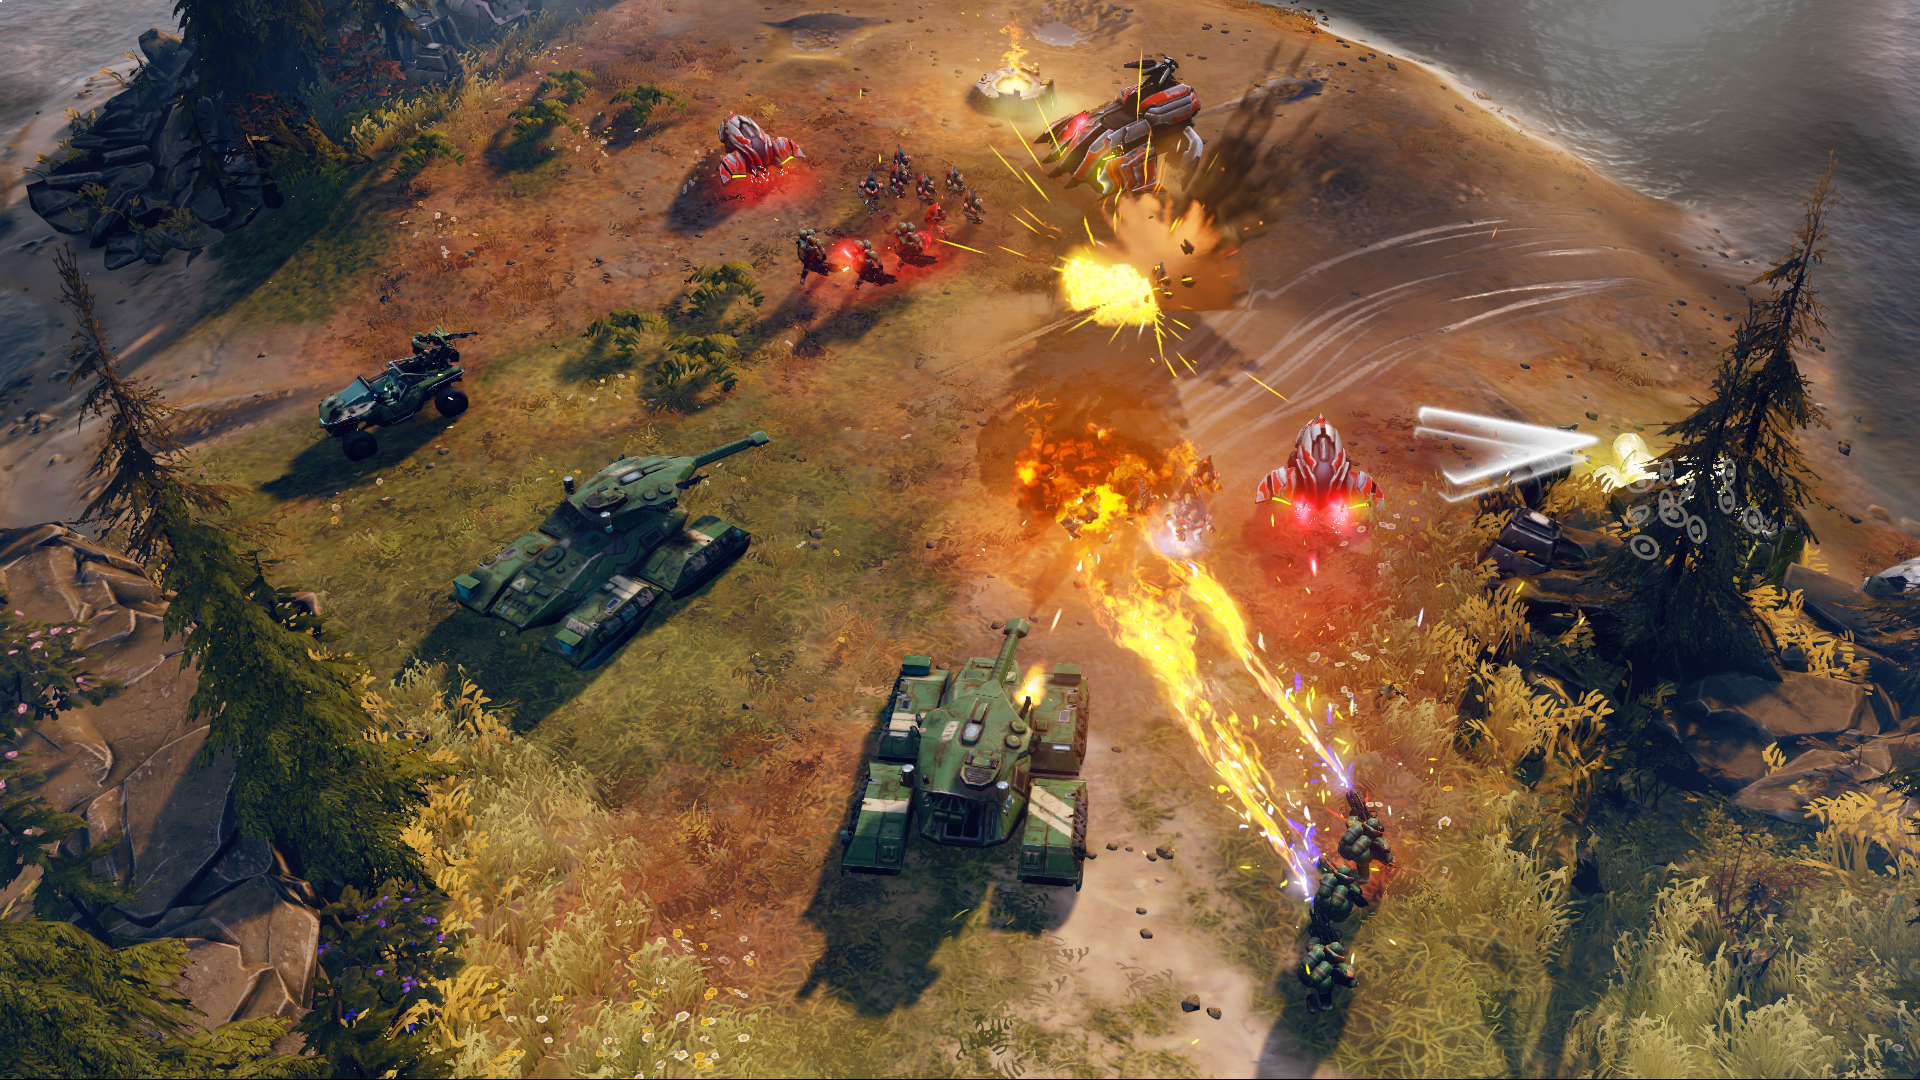 Halo Wars 2 Available February 21st On Pc  Awesome Extras And System Requirements Revealed